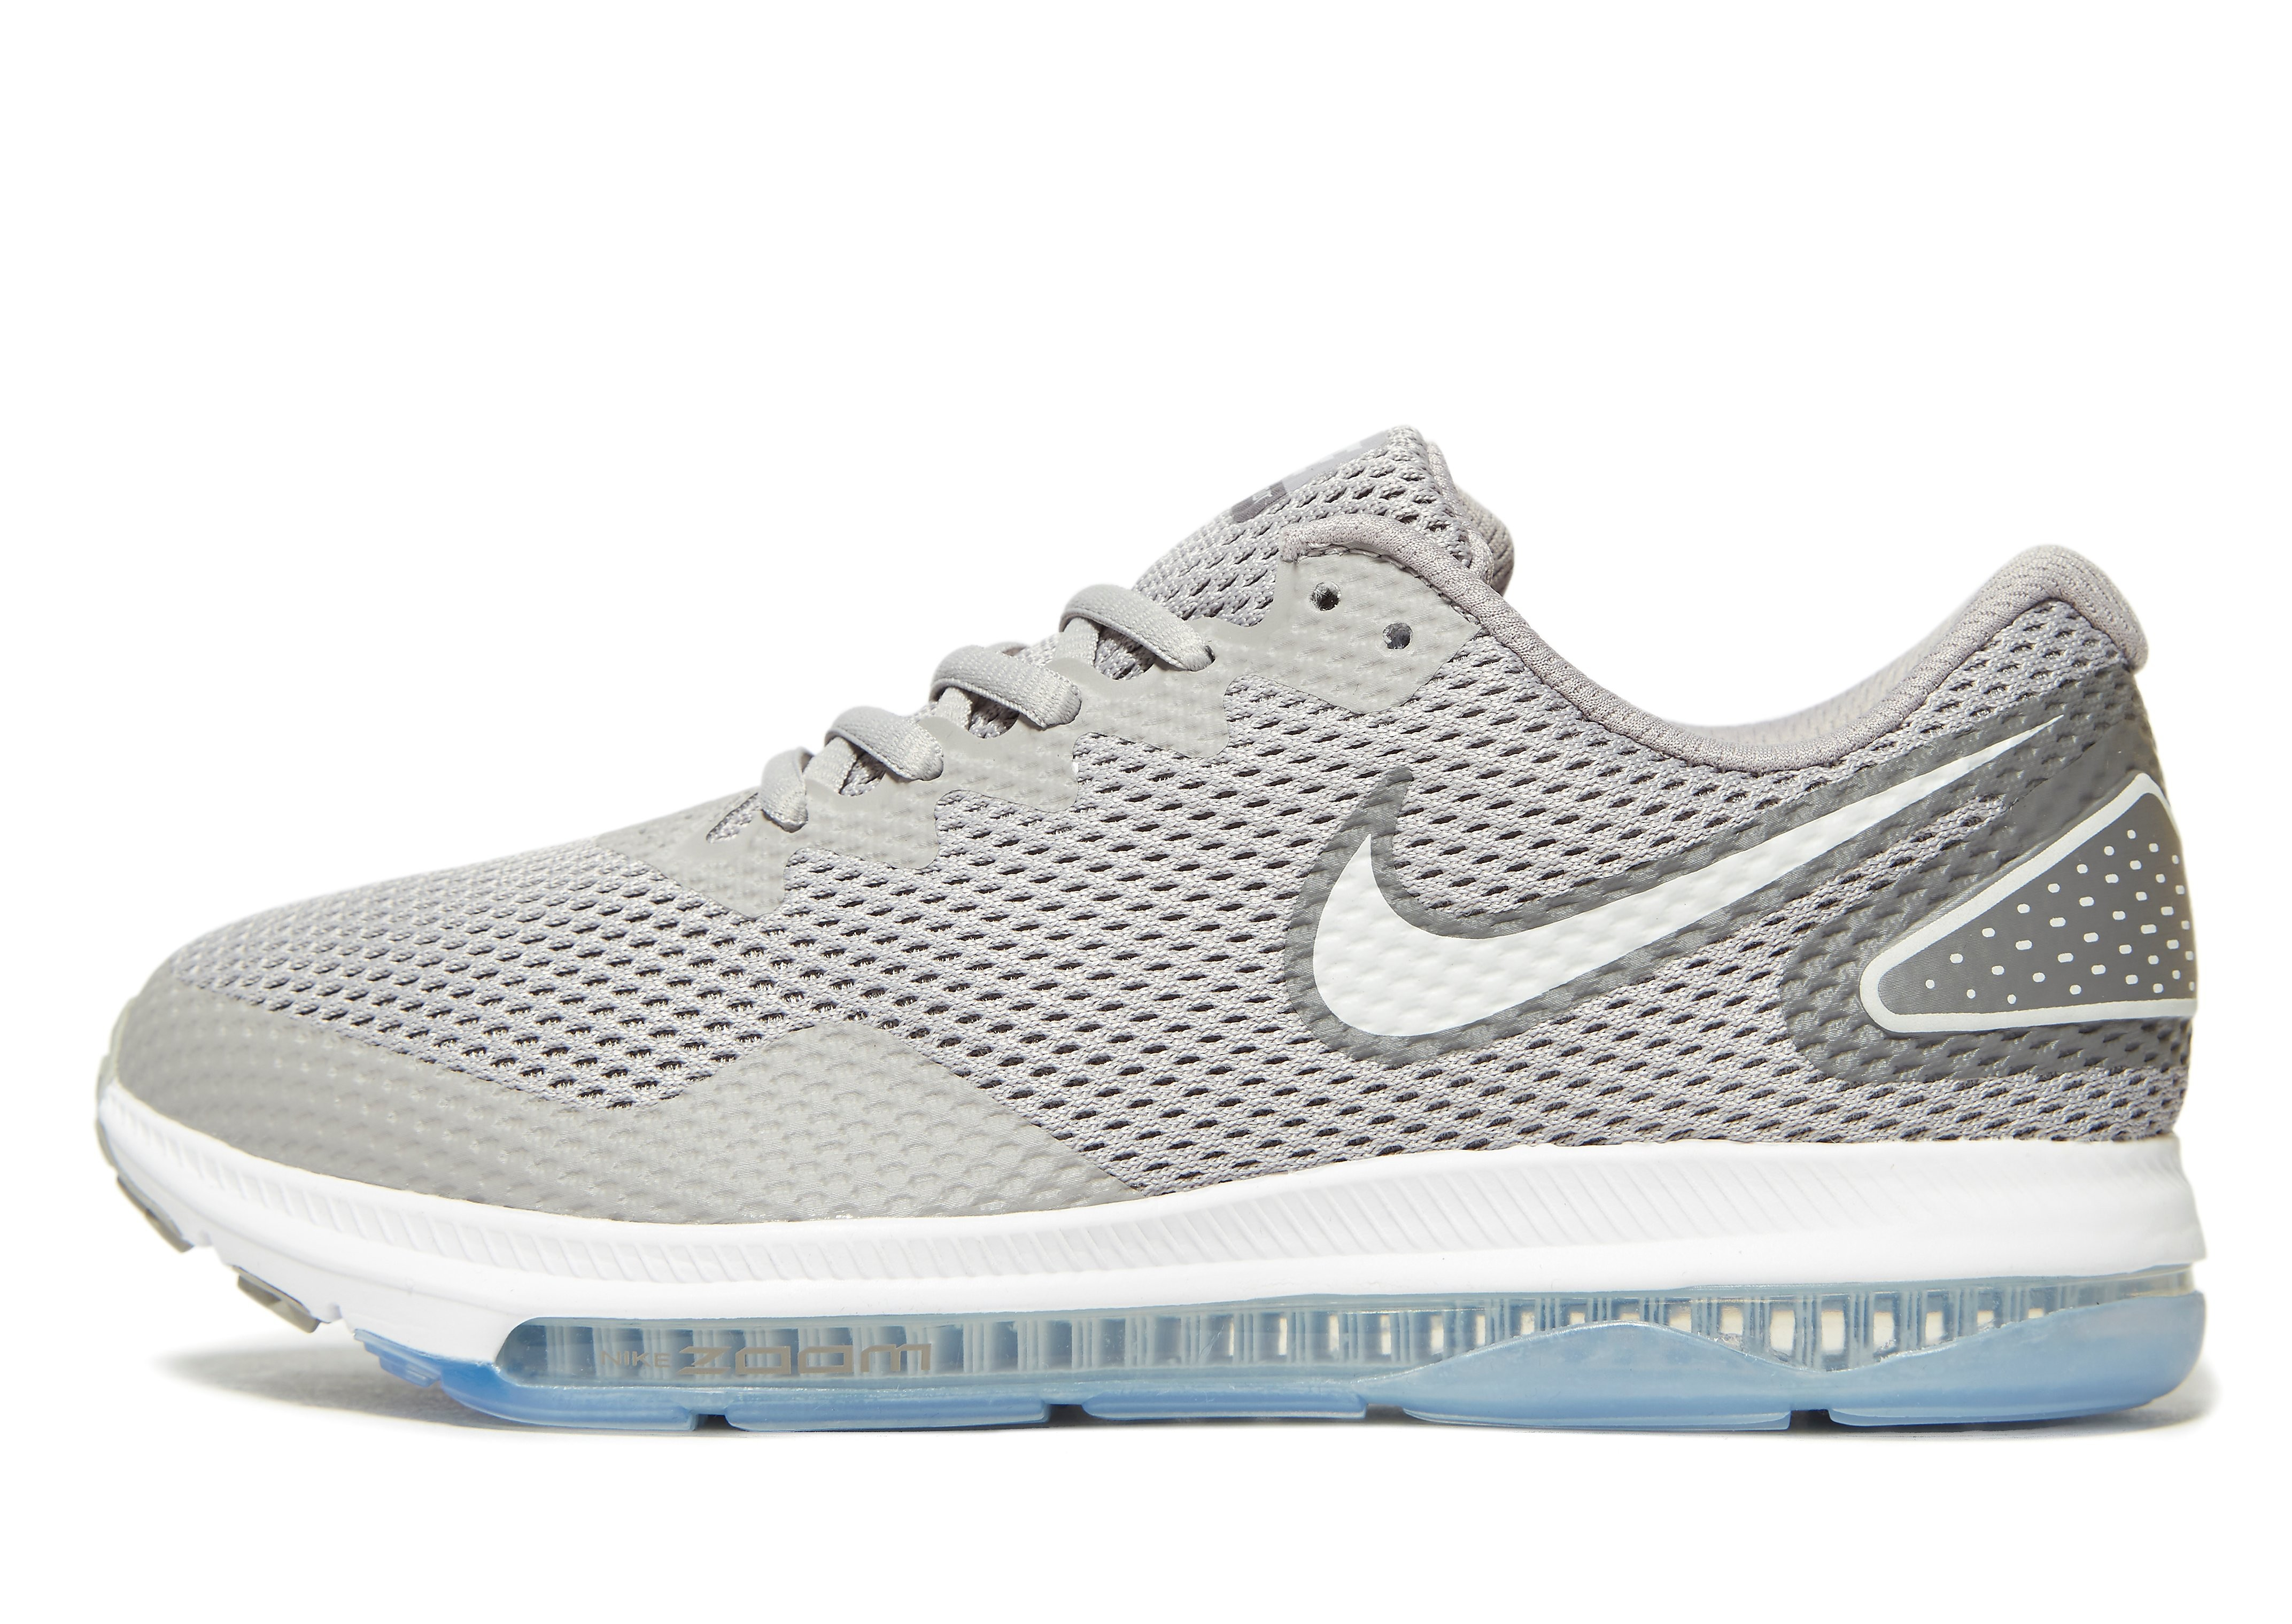 Nike Zoom All Out Dames - Grijs - Dames